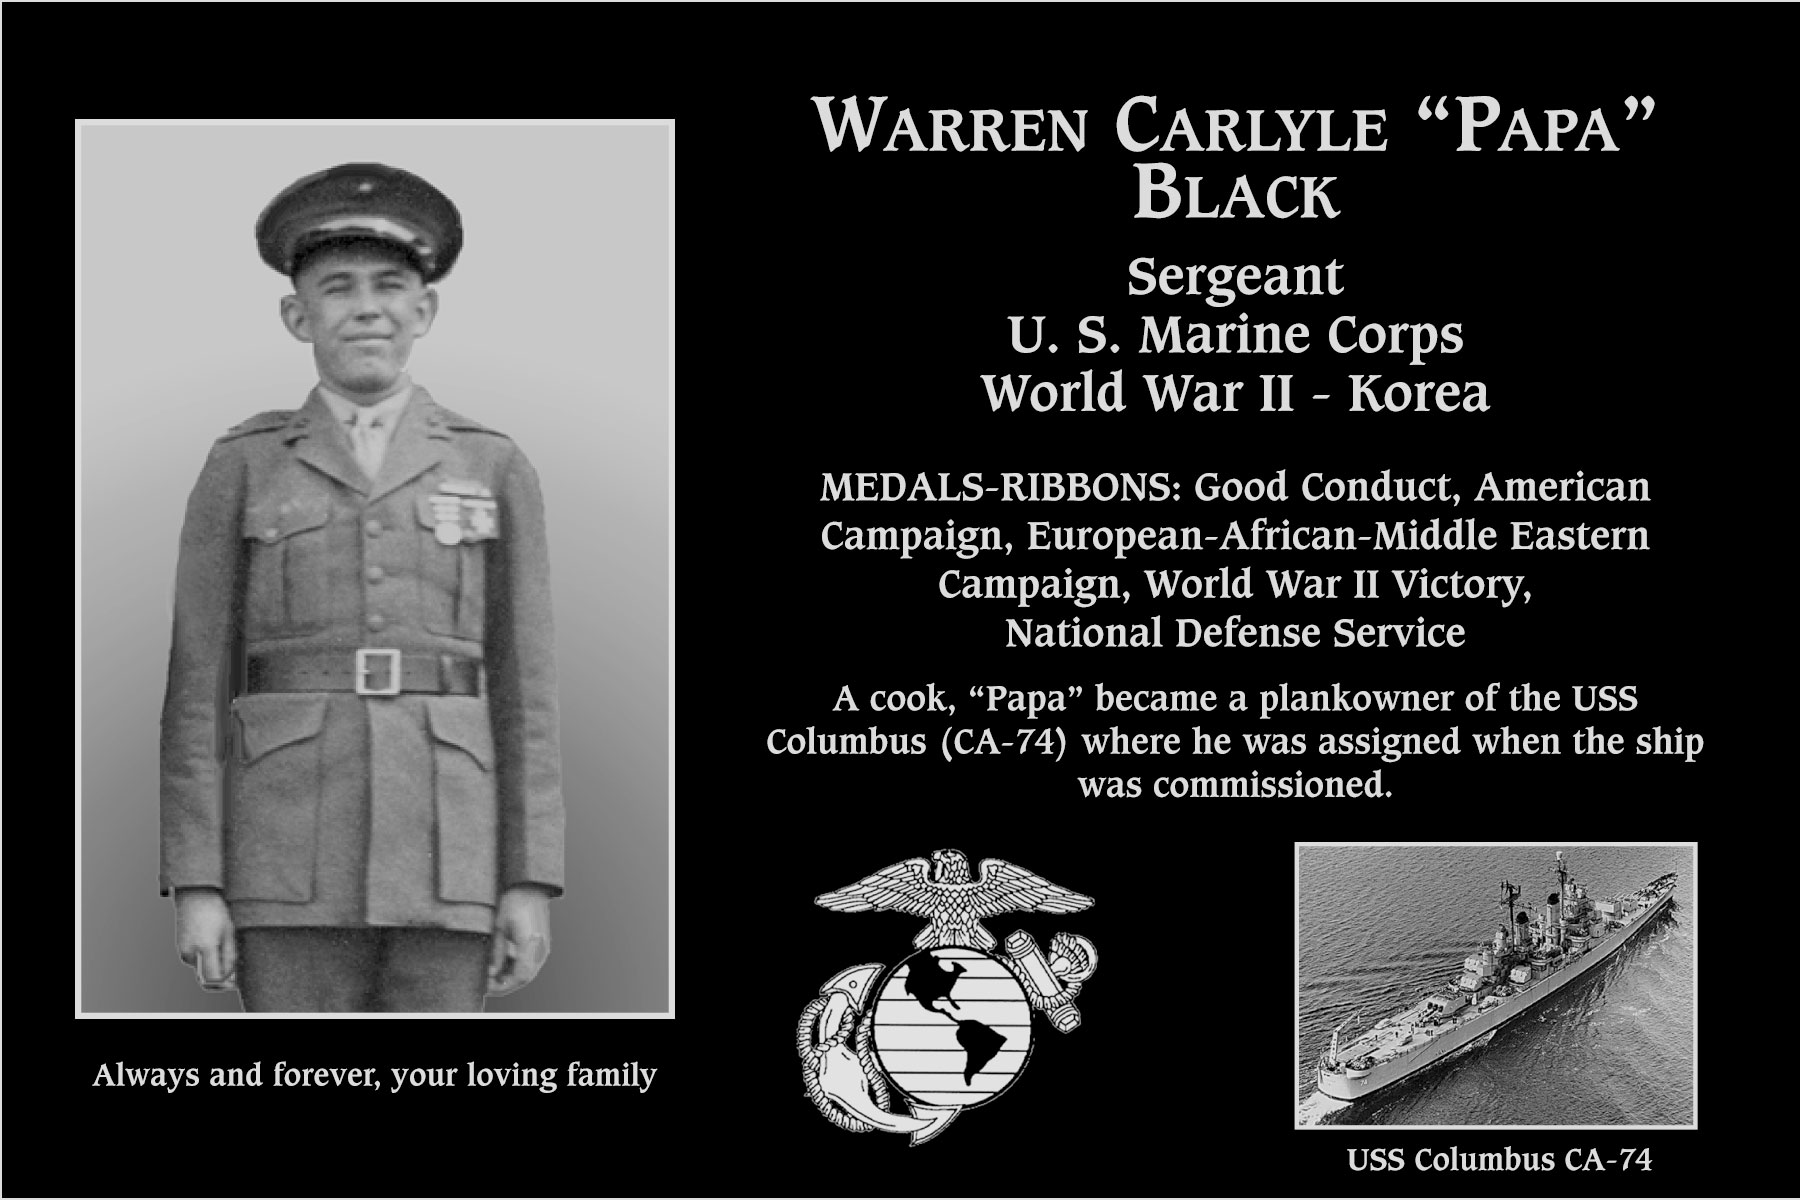 Warren Carlyle Black